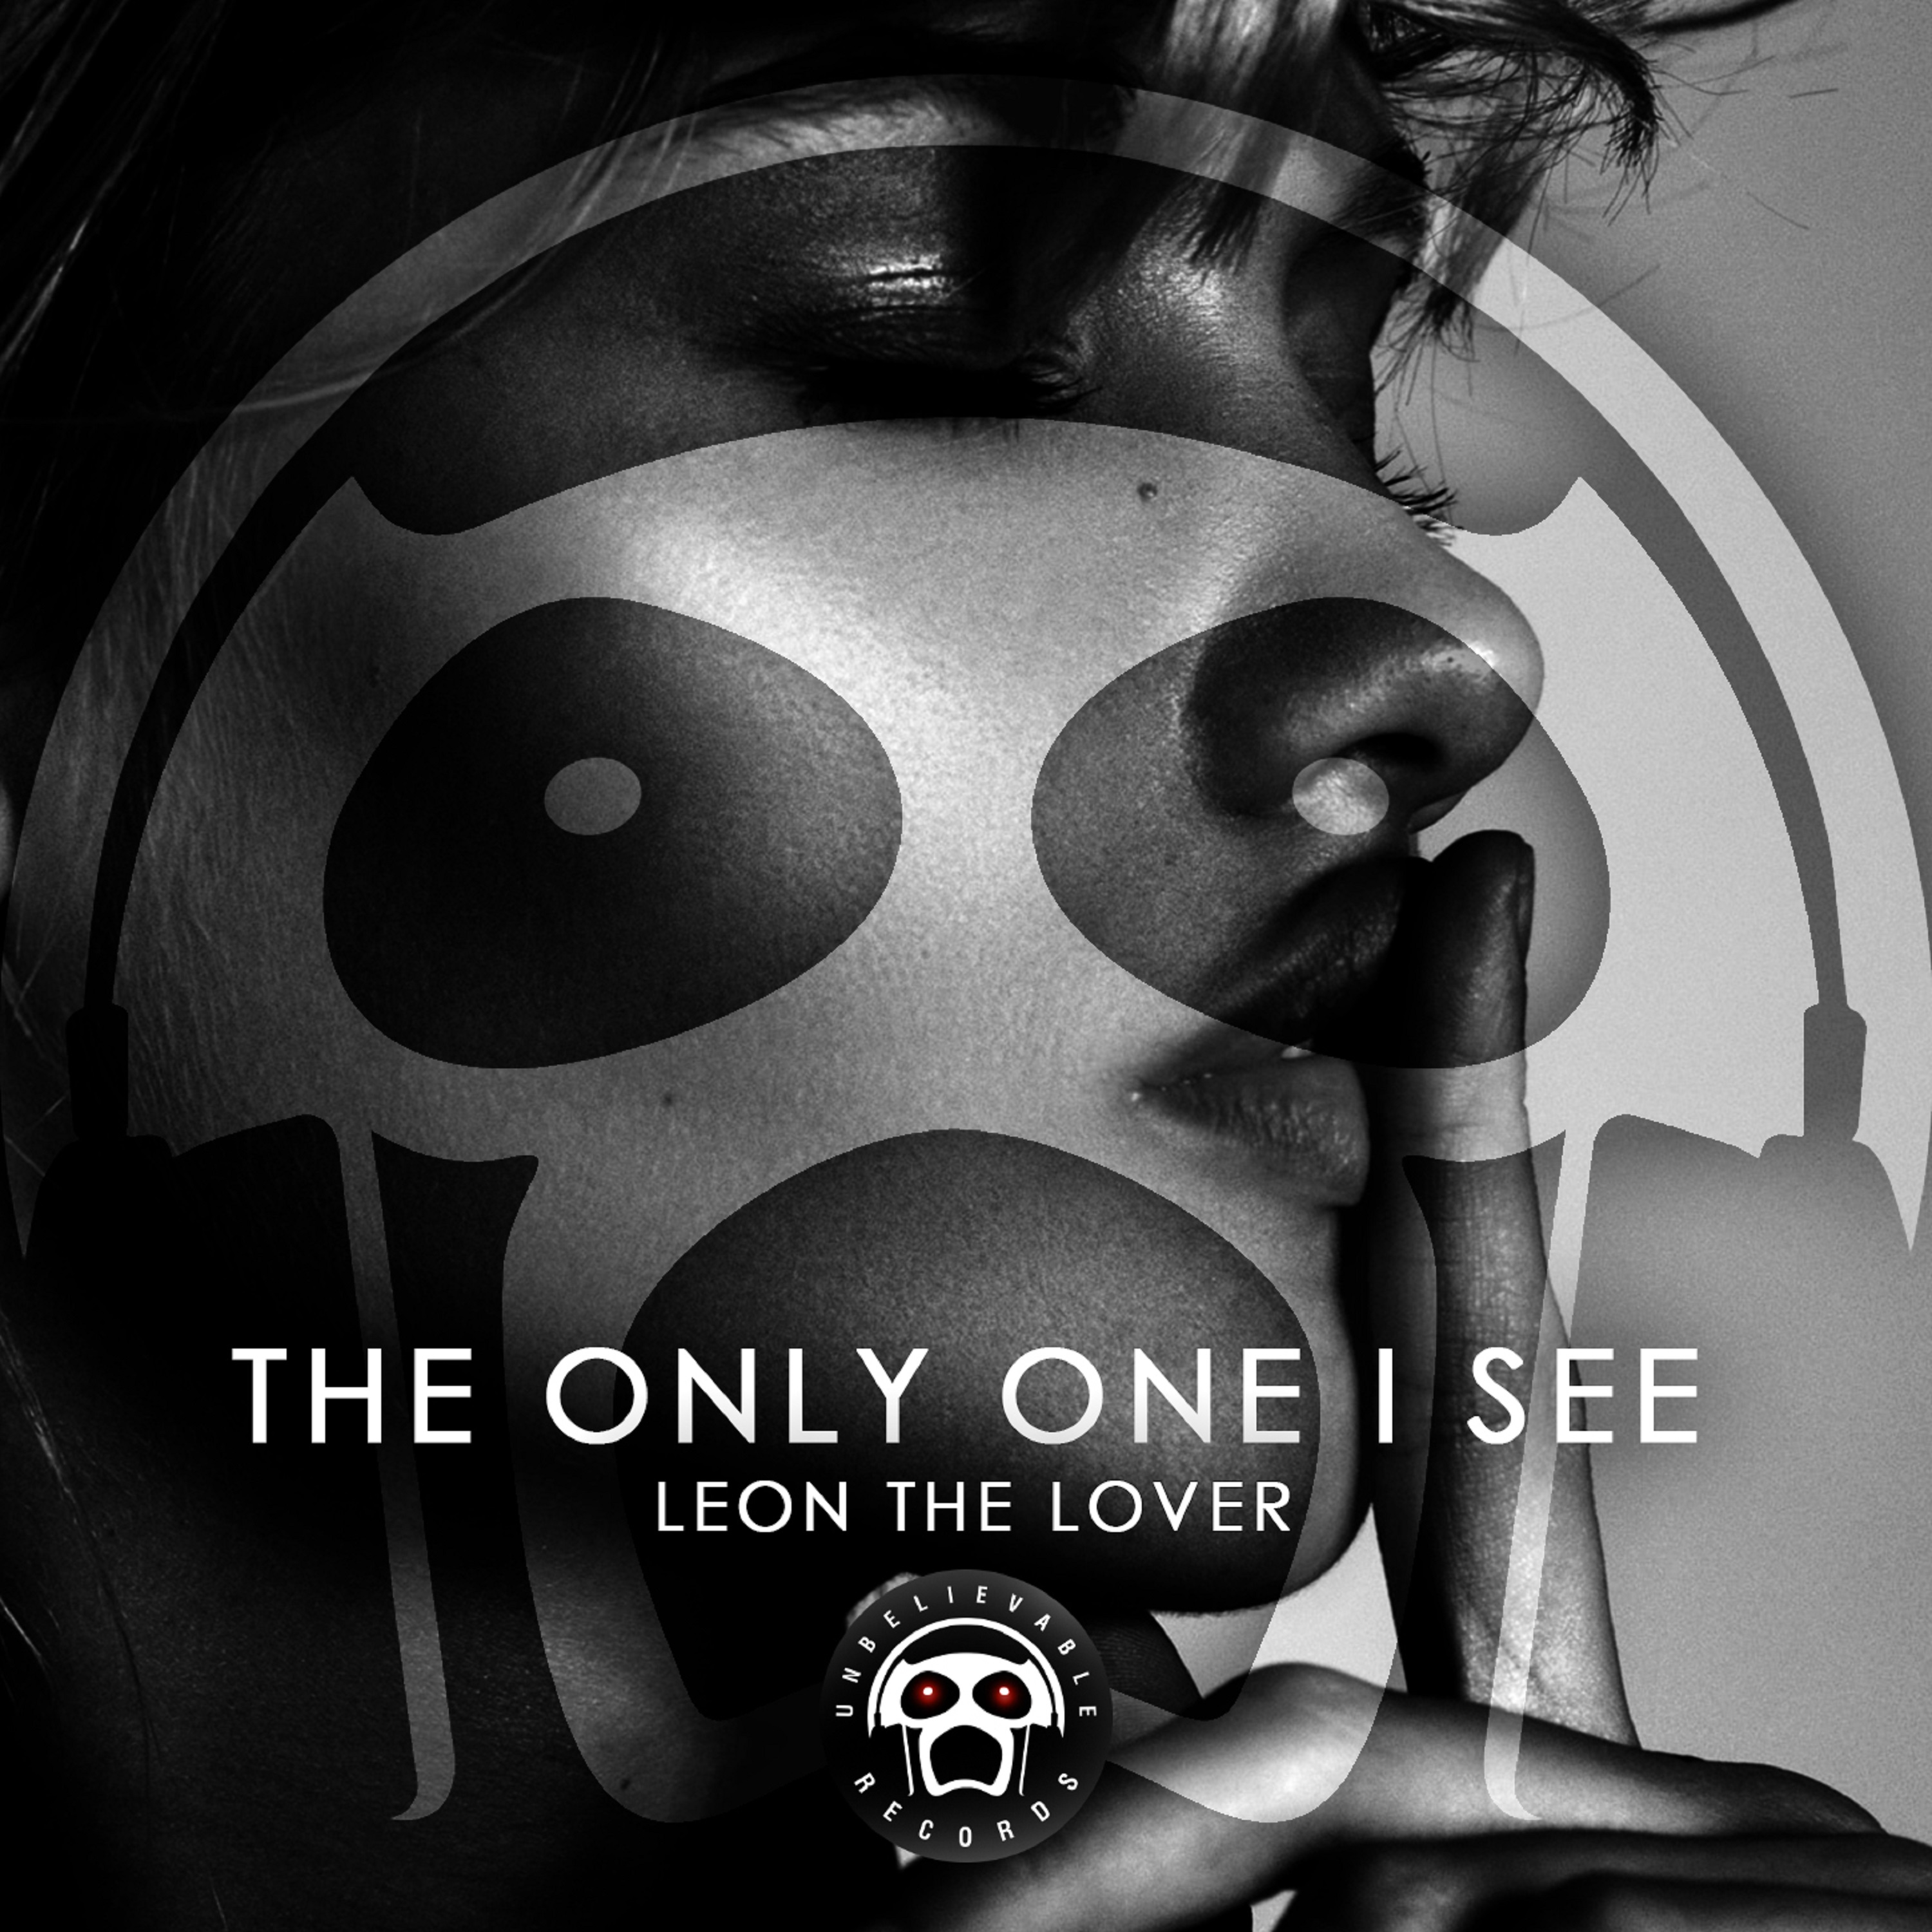 Leon The Lover - The Only One I See